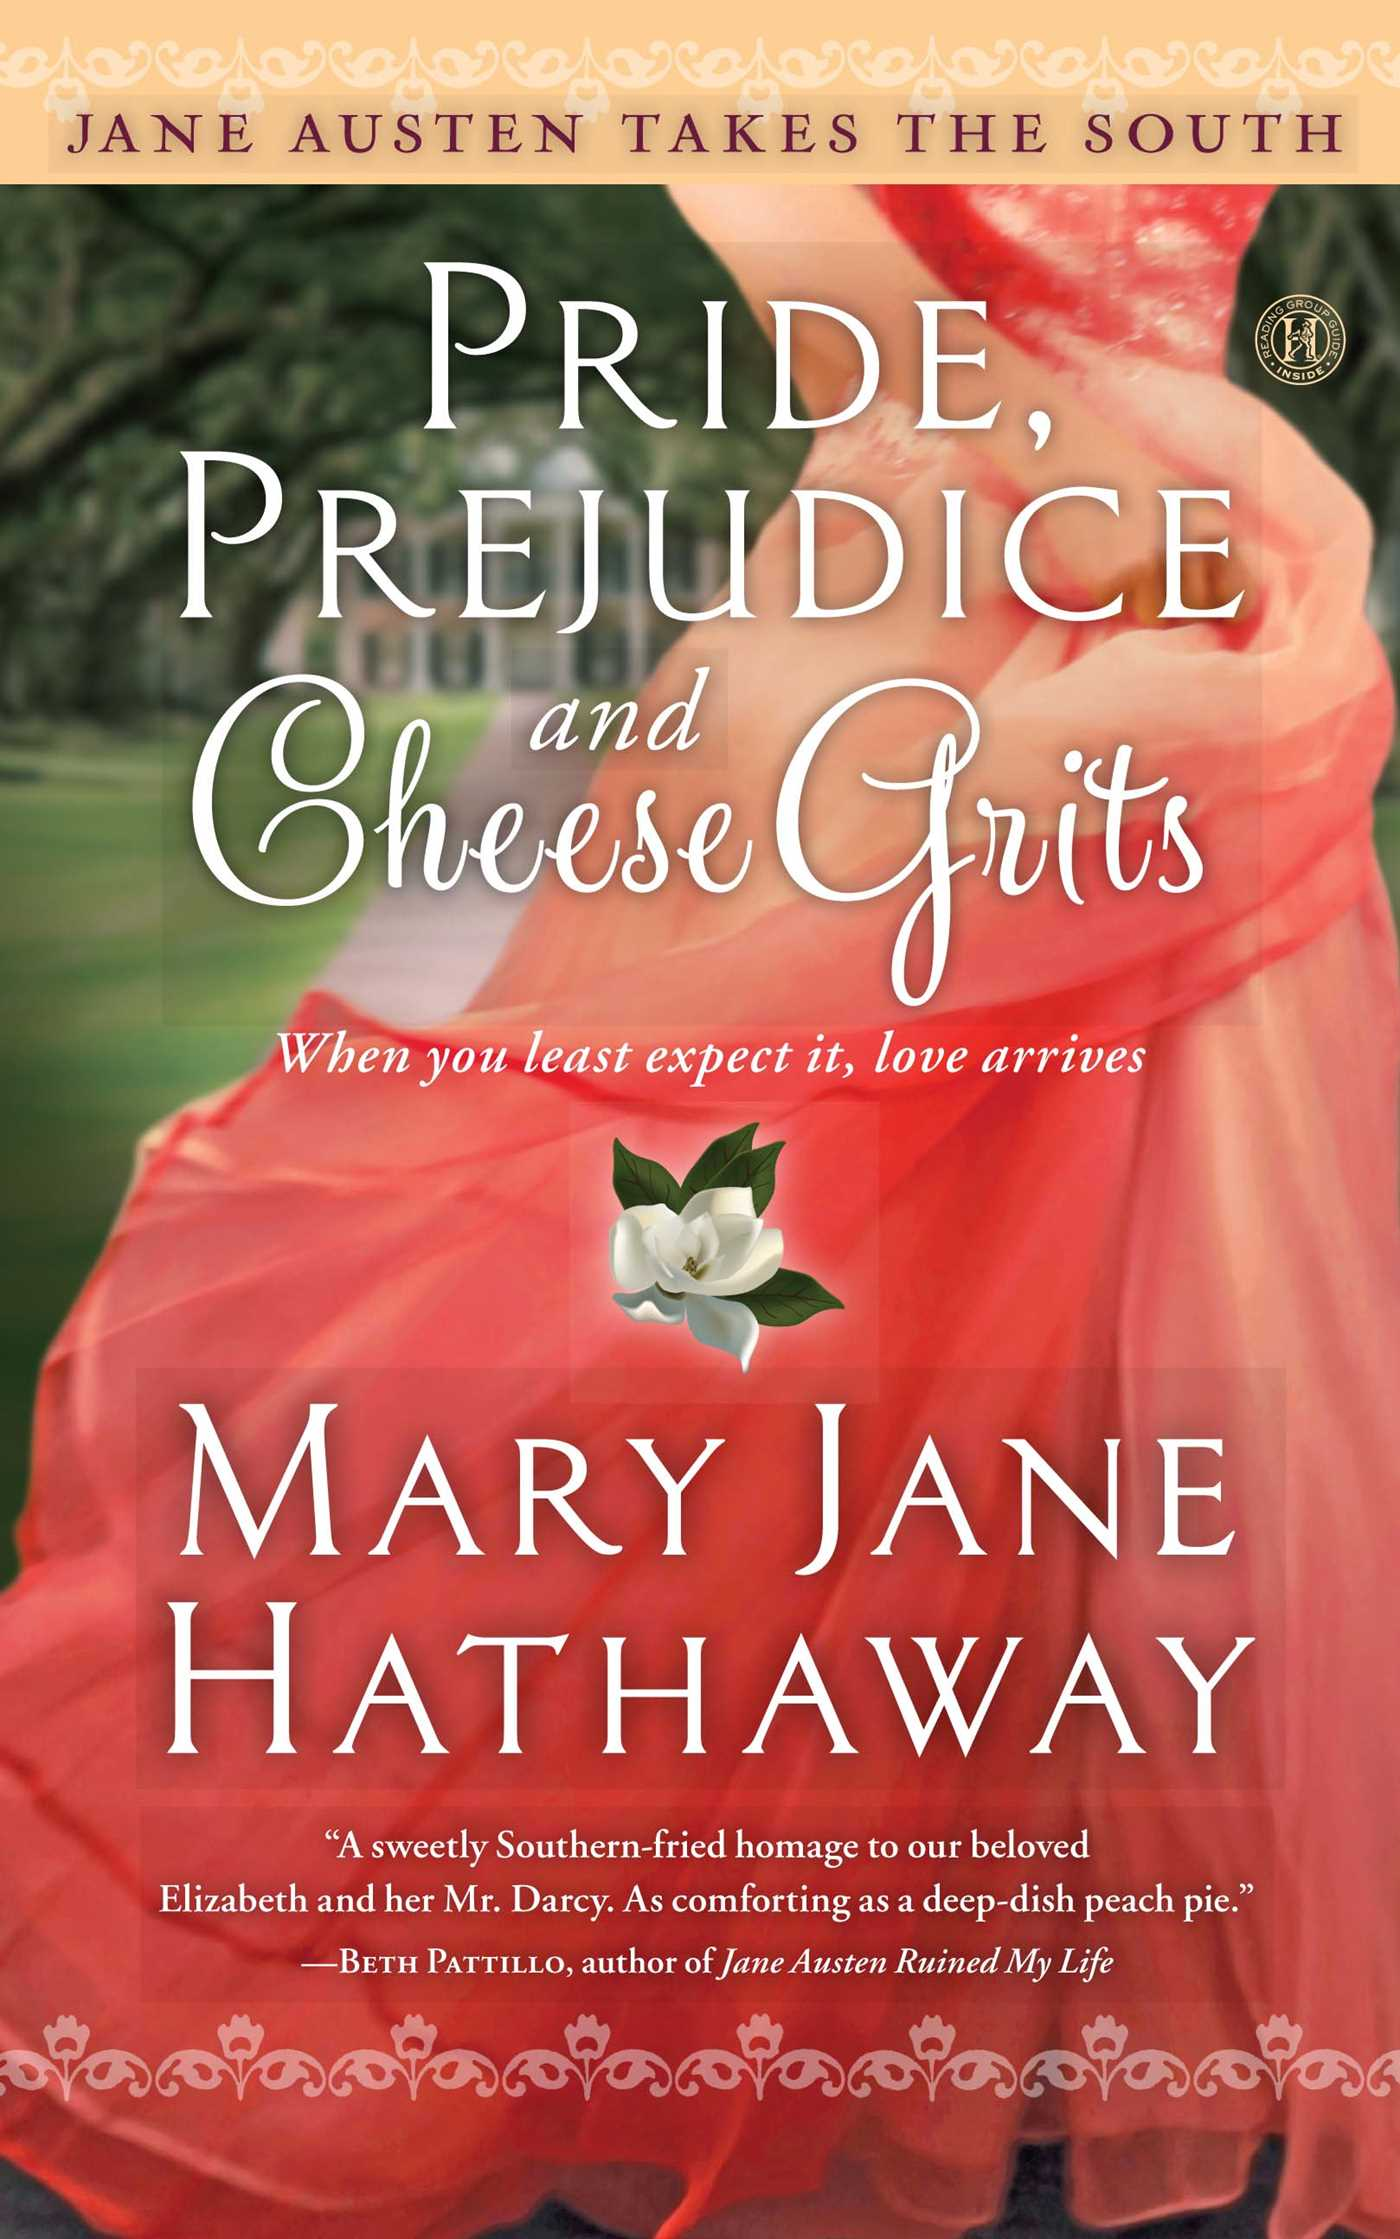 Pride prejudice and cheese grits 9781476777504 hr